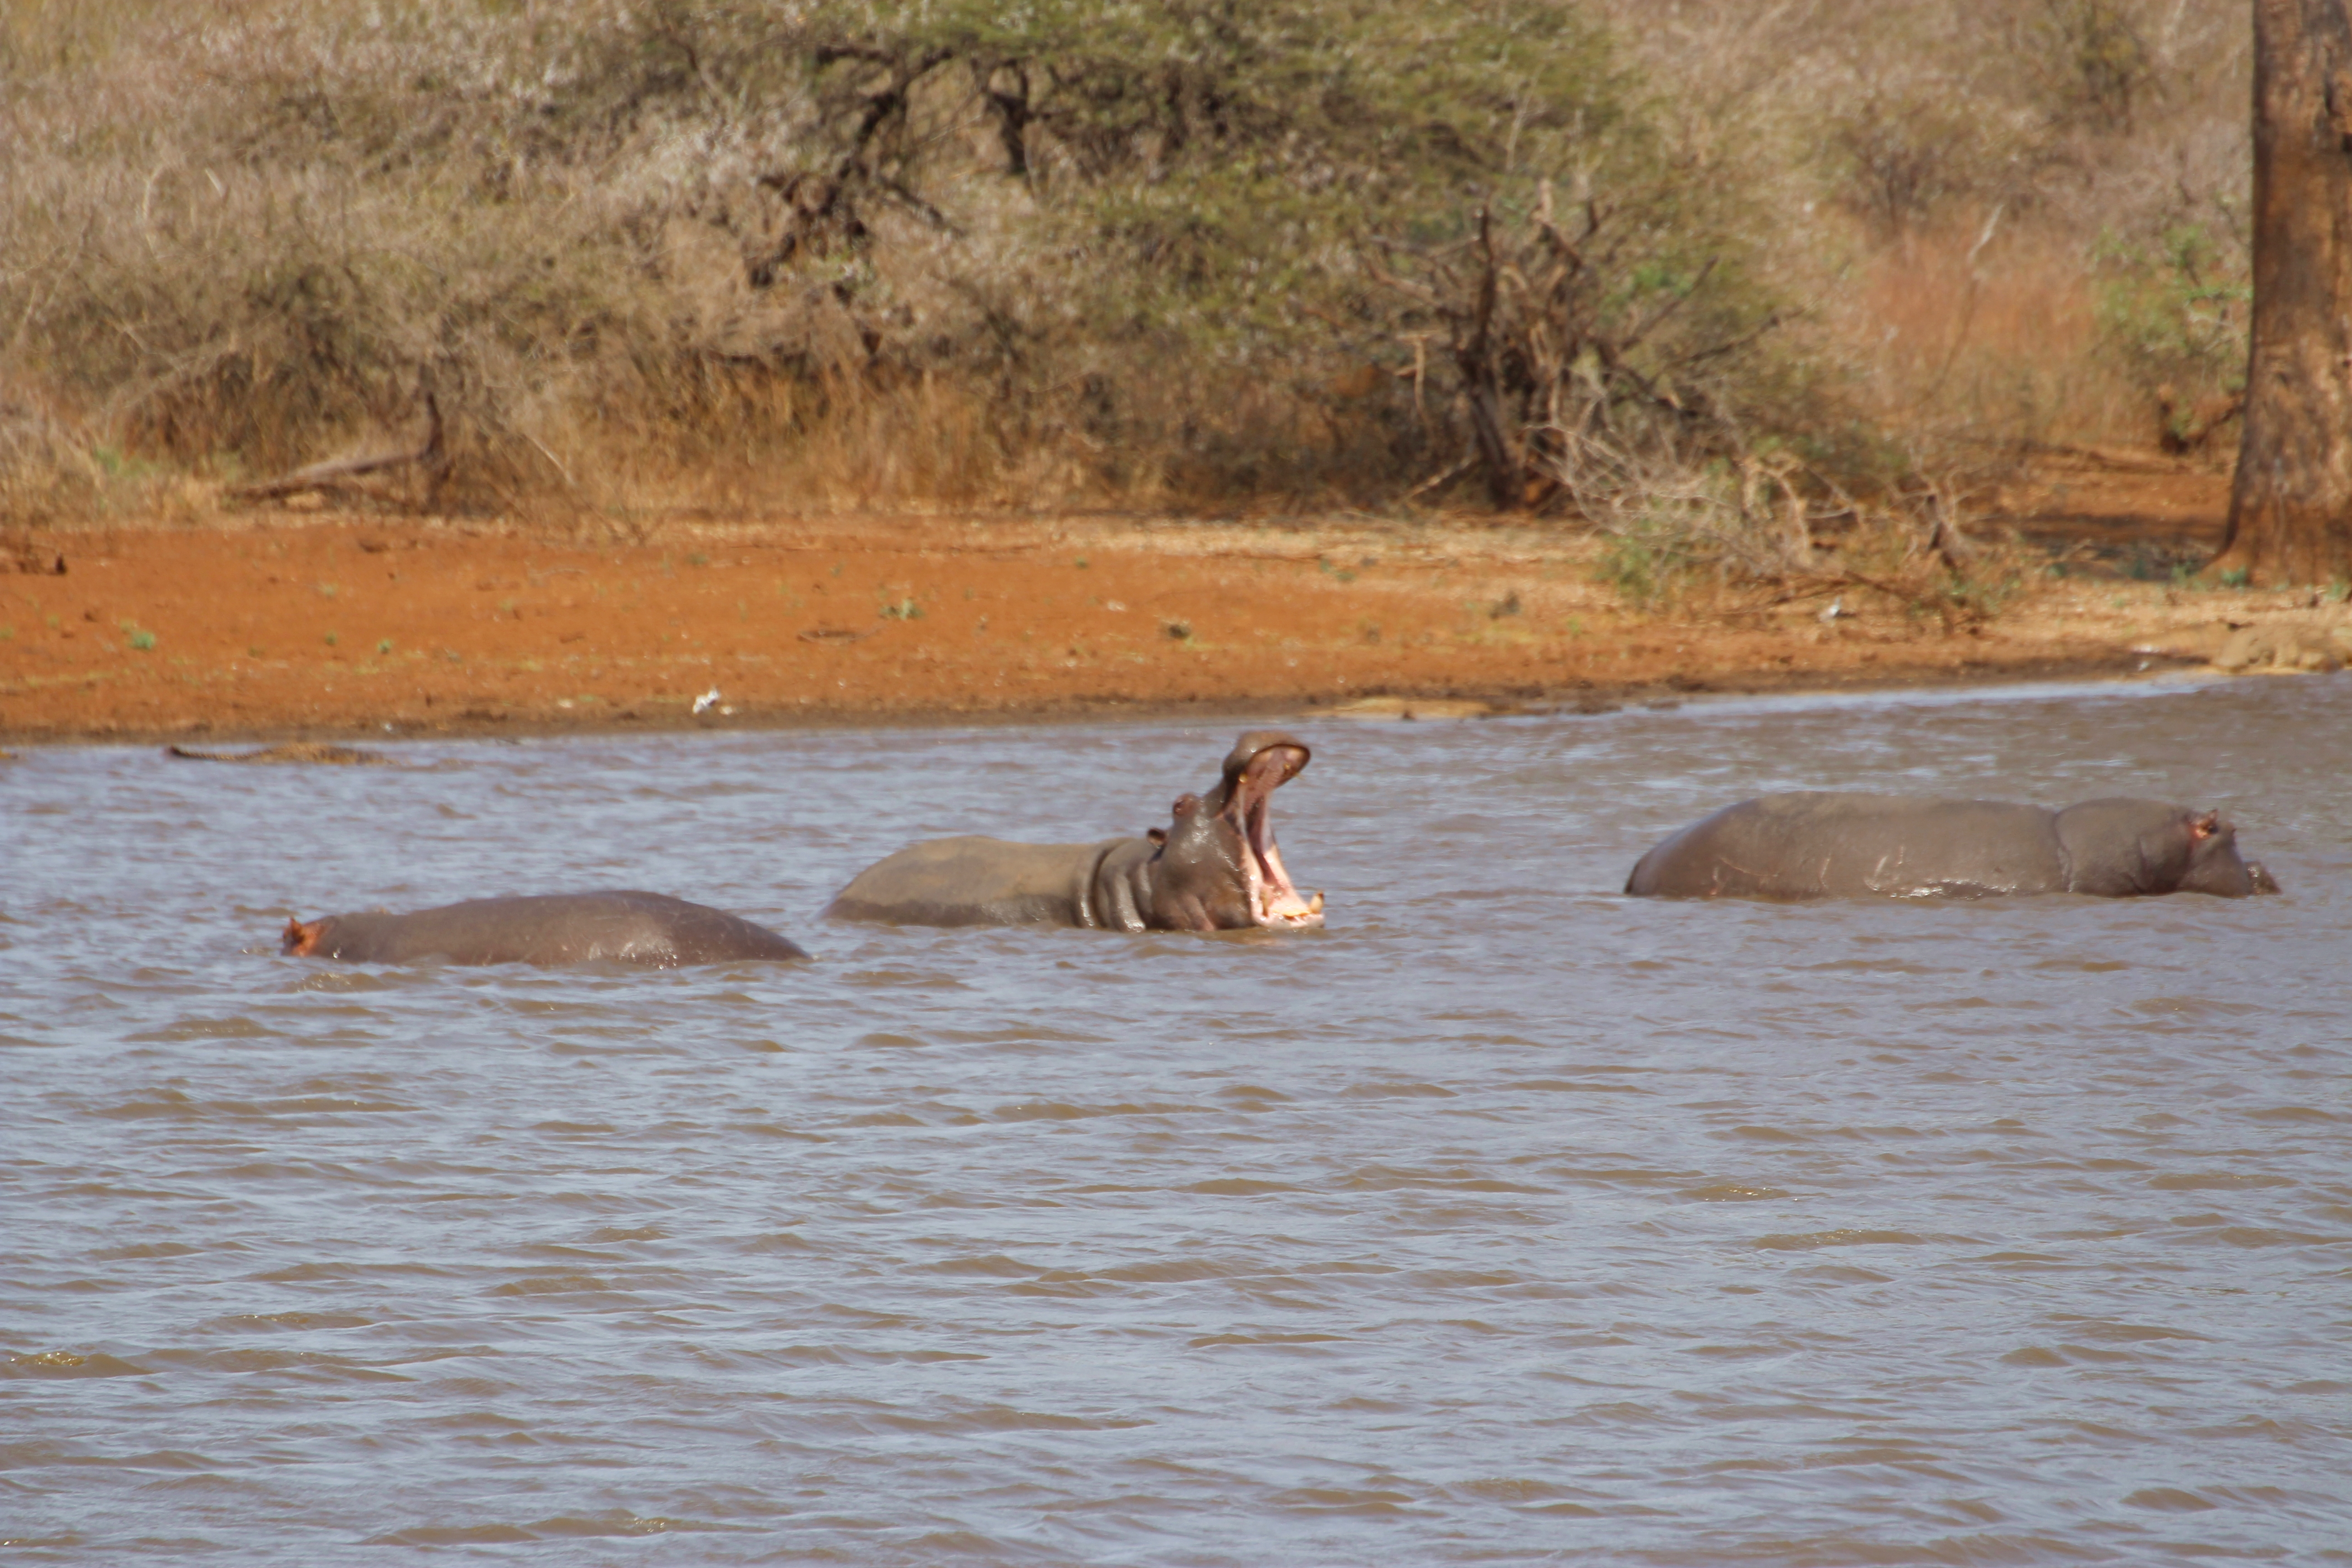 Kruger hippo yawning in water